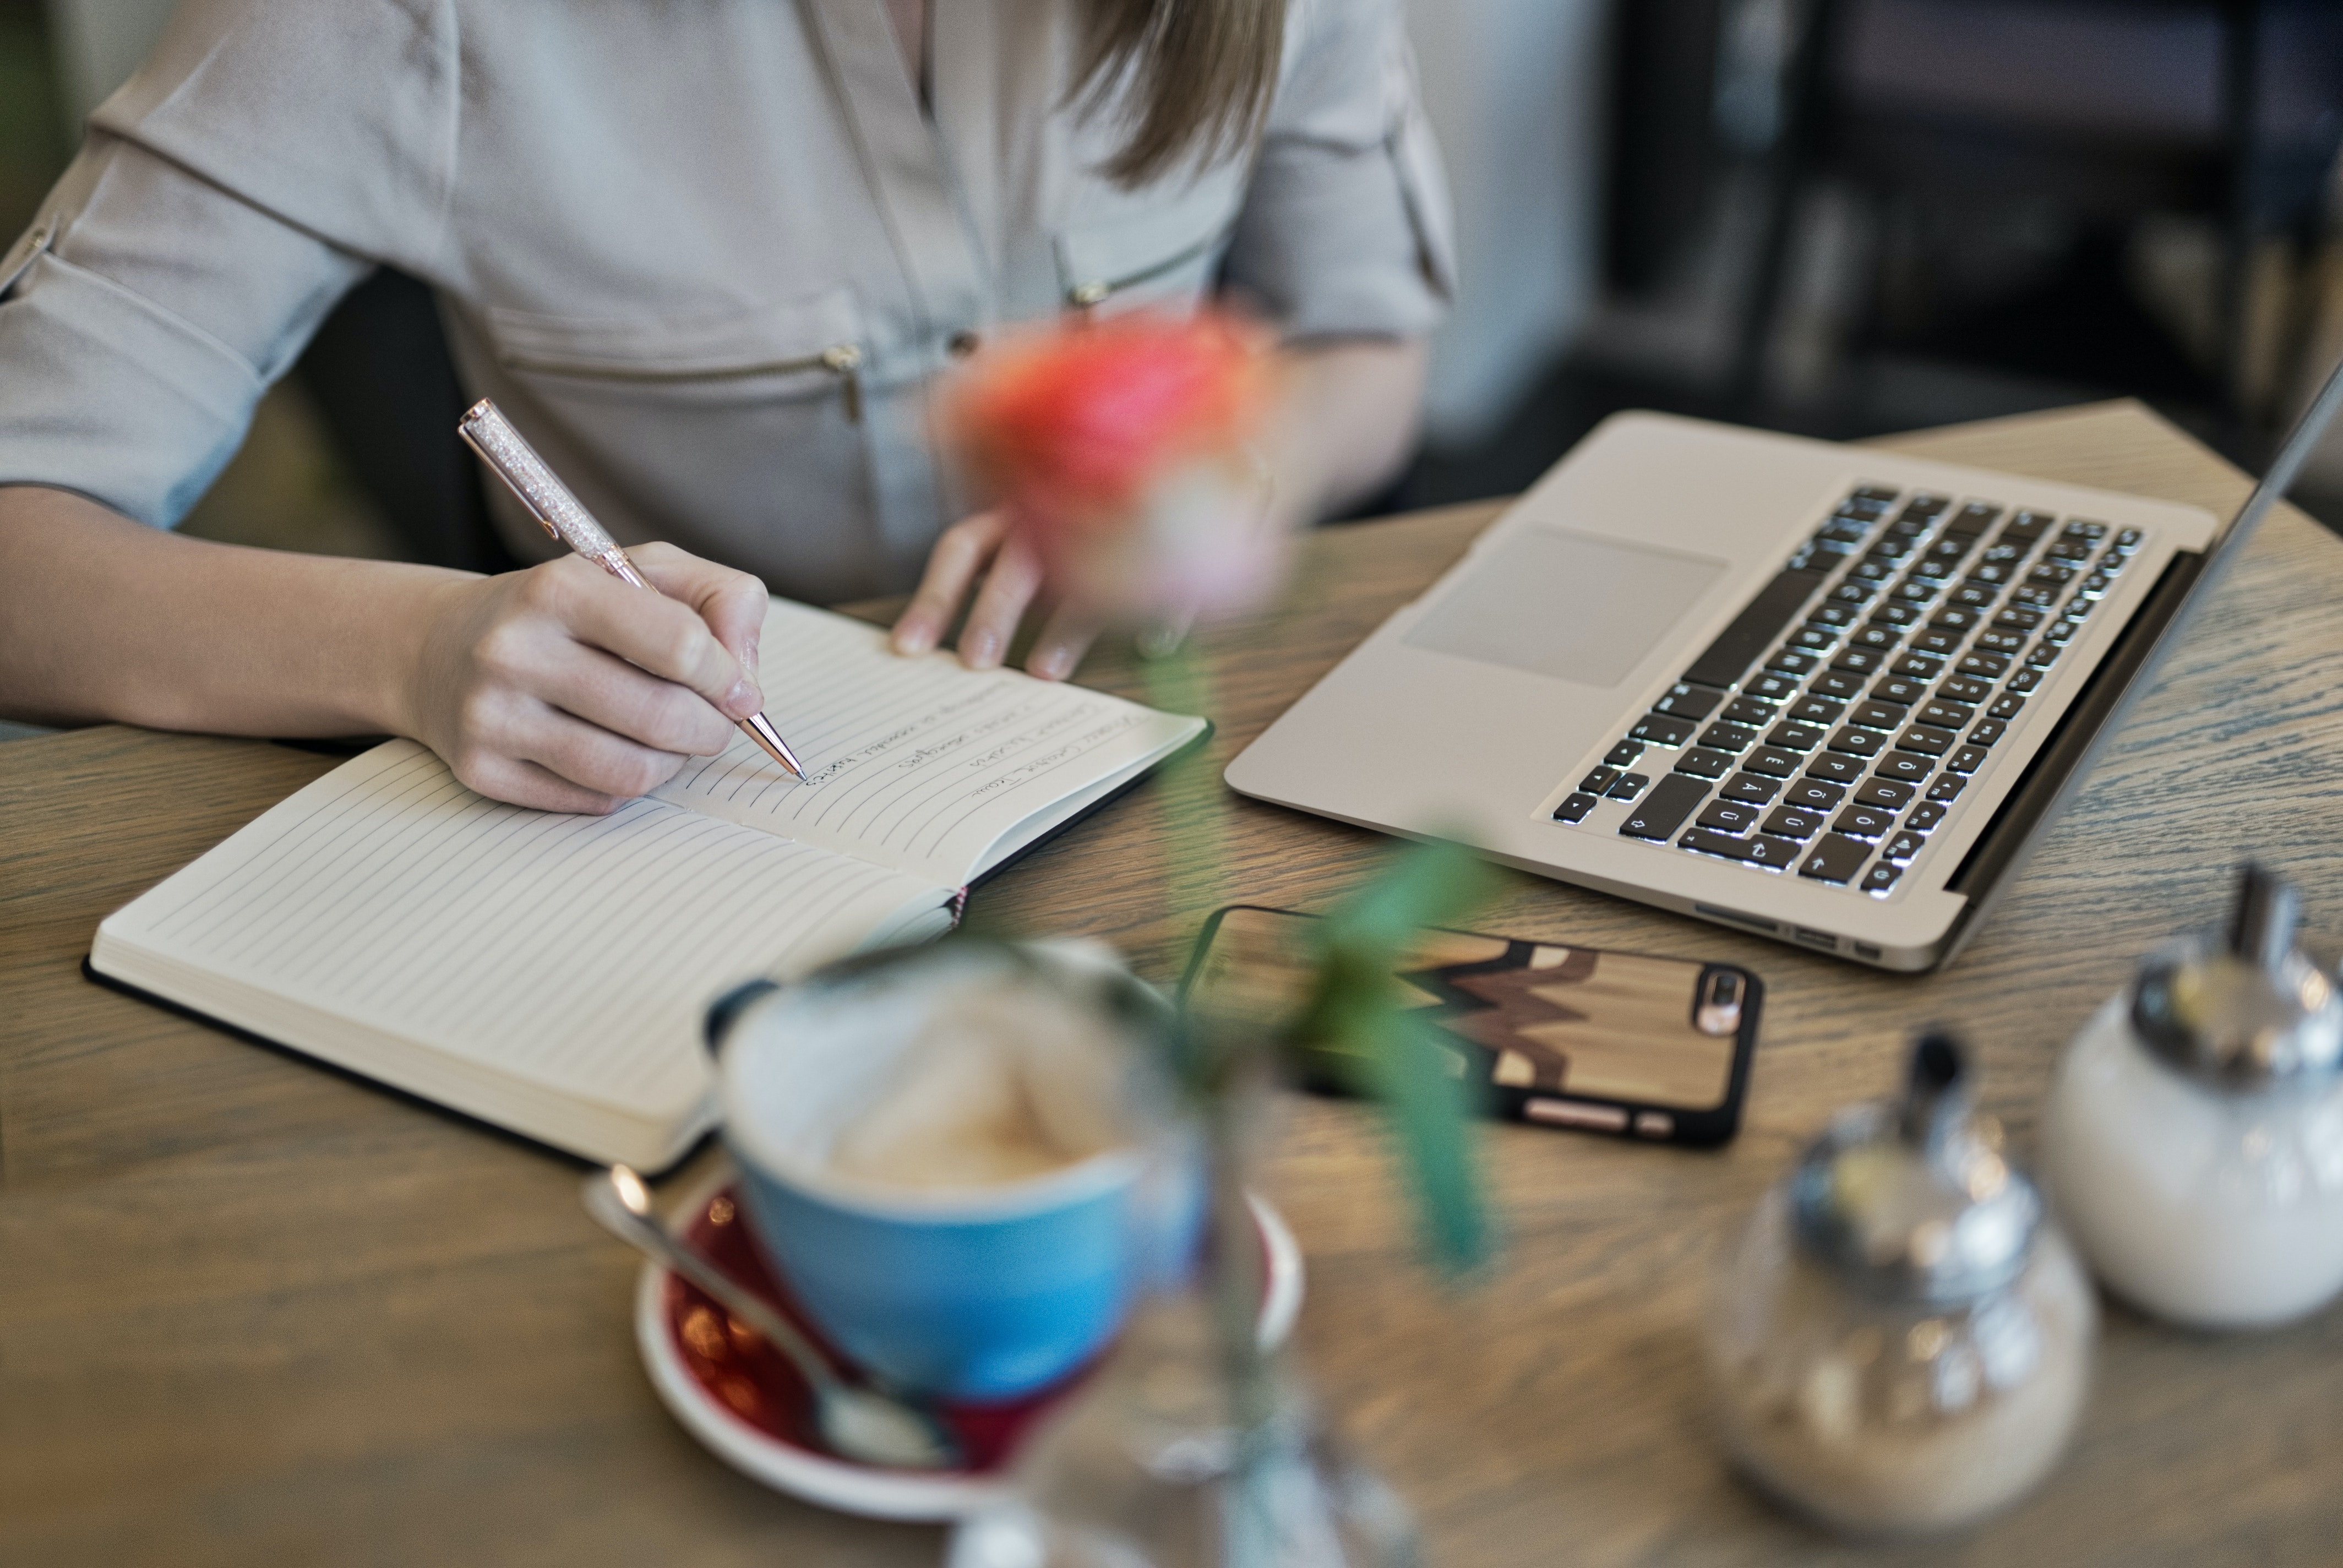 Woman writing in journal with laptop and coffee on the table